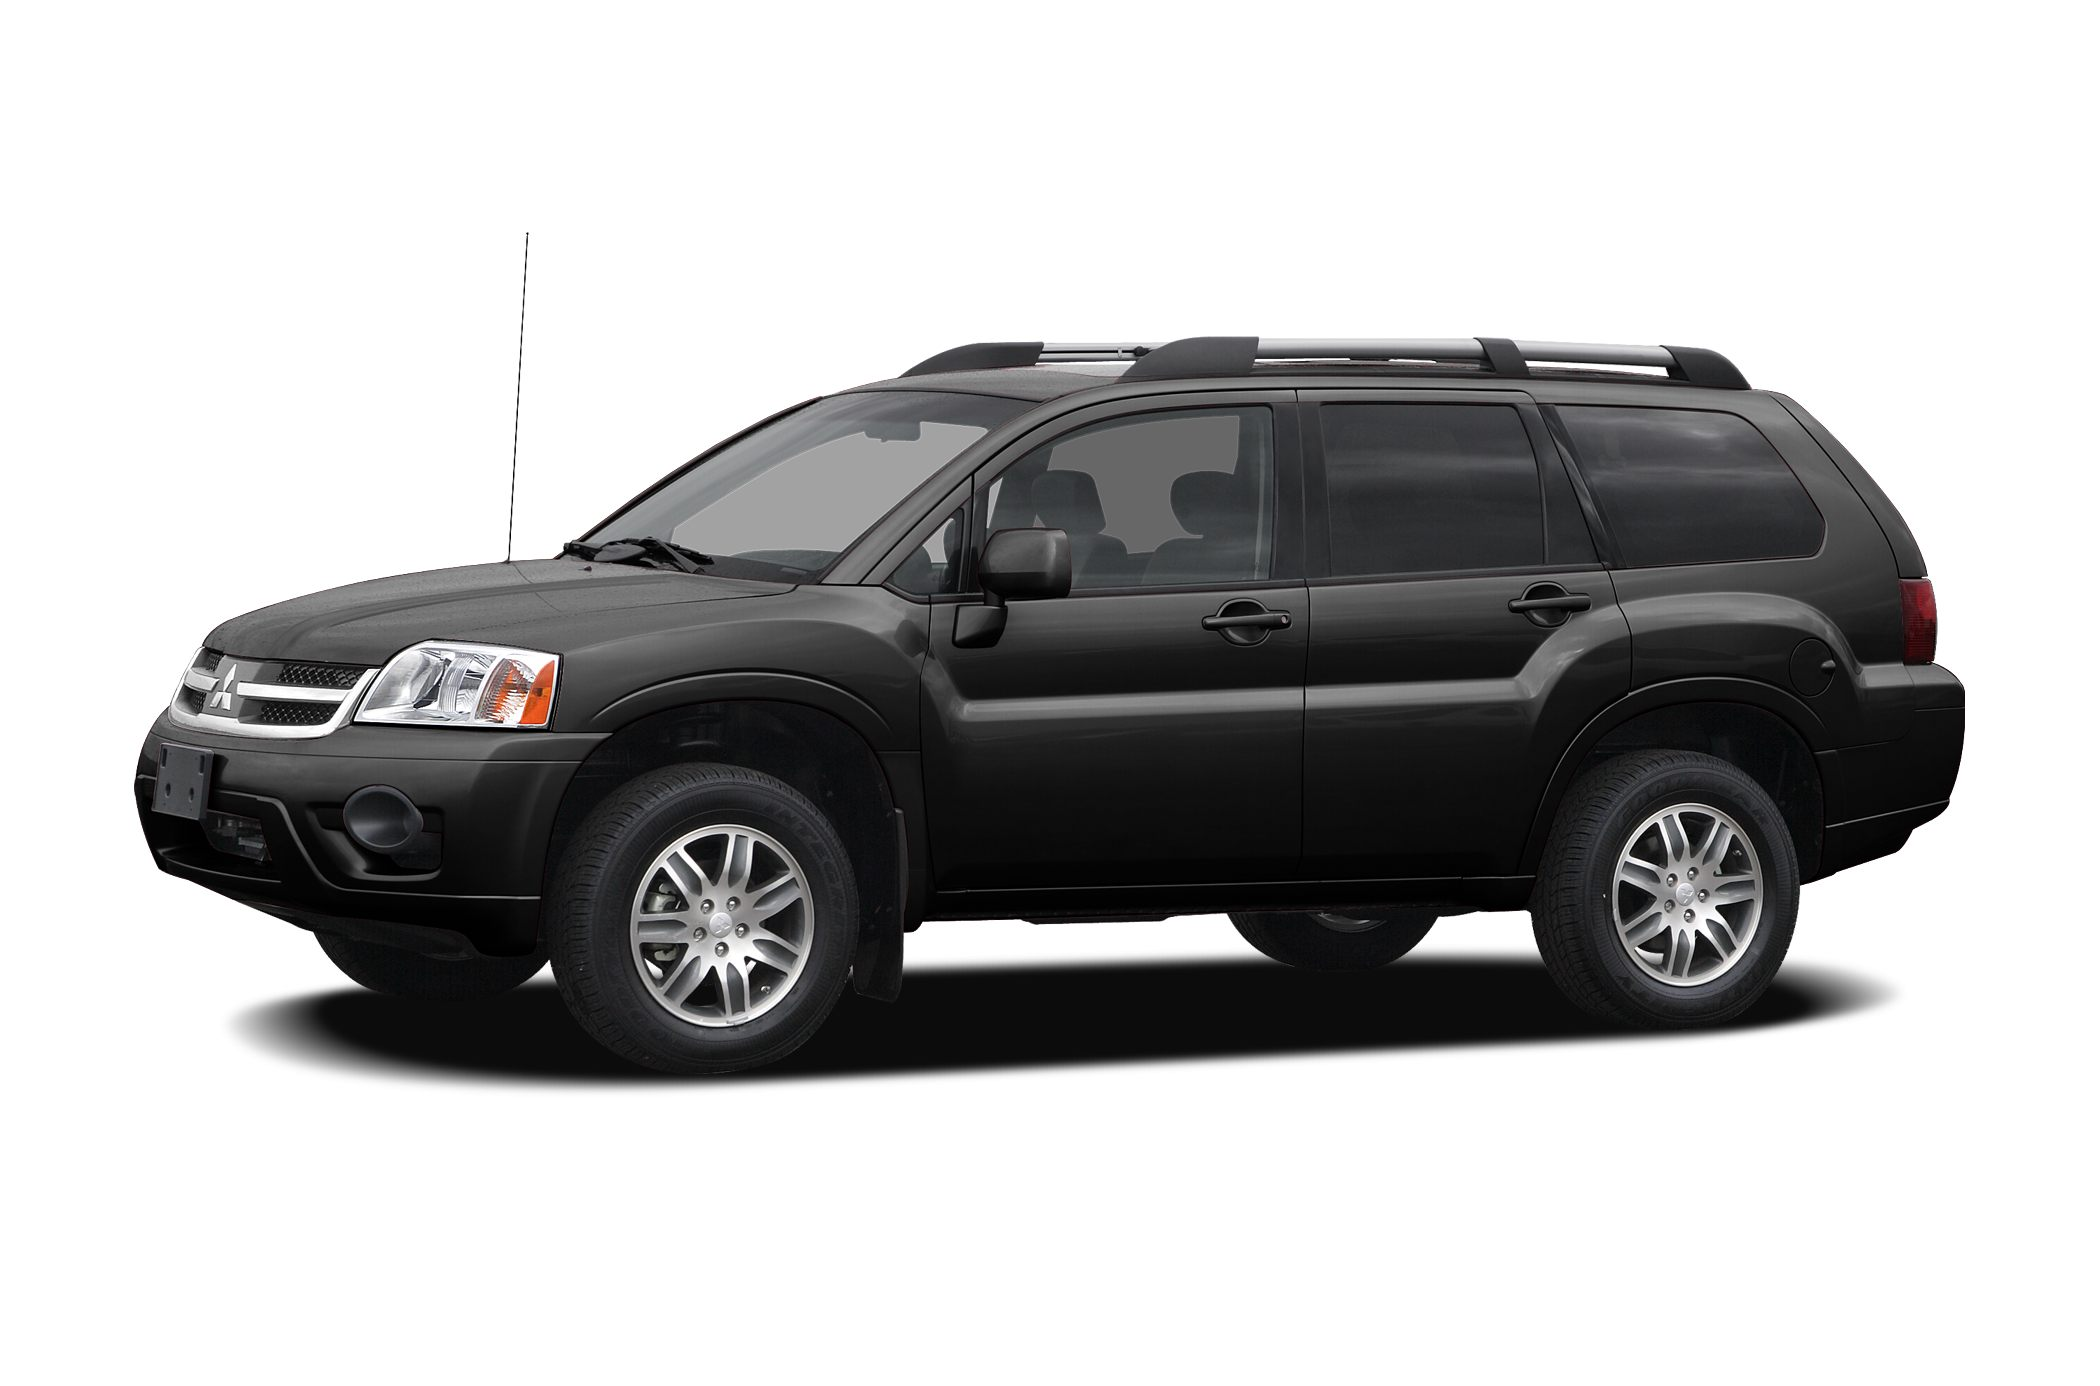 2007 Mitsubishi Endeavor LS SUV for sale in Daytona Beach for $8,995 with 89,954 miles